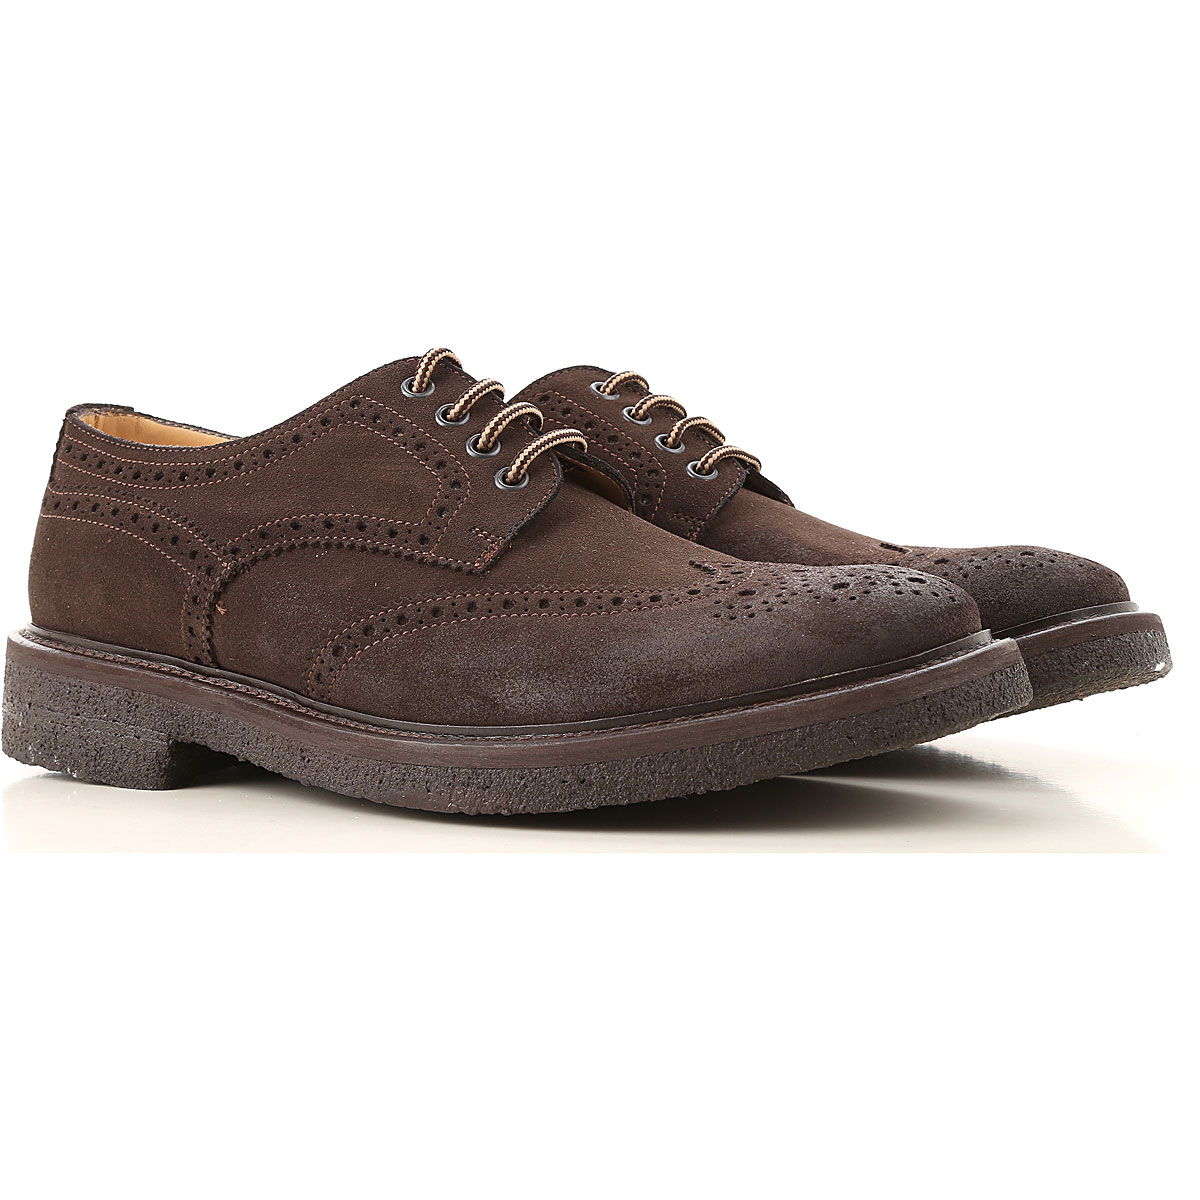 Seboys Lace Up Shoes for Men Oxfords, Derbies and Brogues On Sale, Dark Brown, Leather, 2019, 10 10.25 10.5 7 7.5 7.75 8 8.5 9 9.5